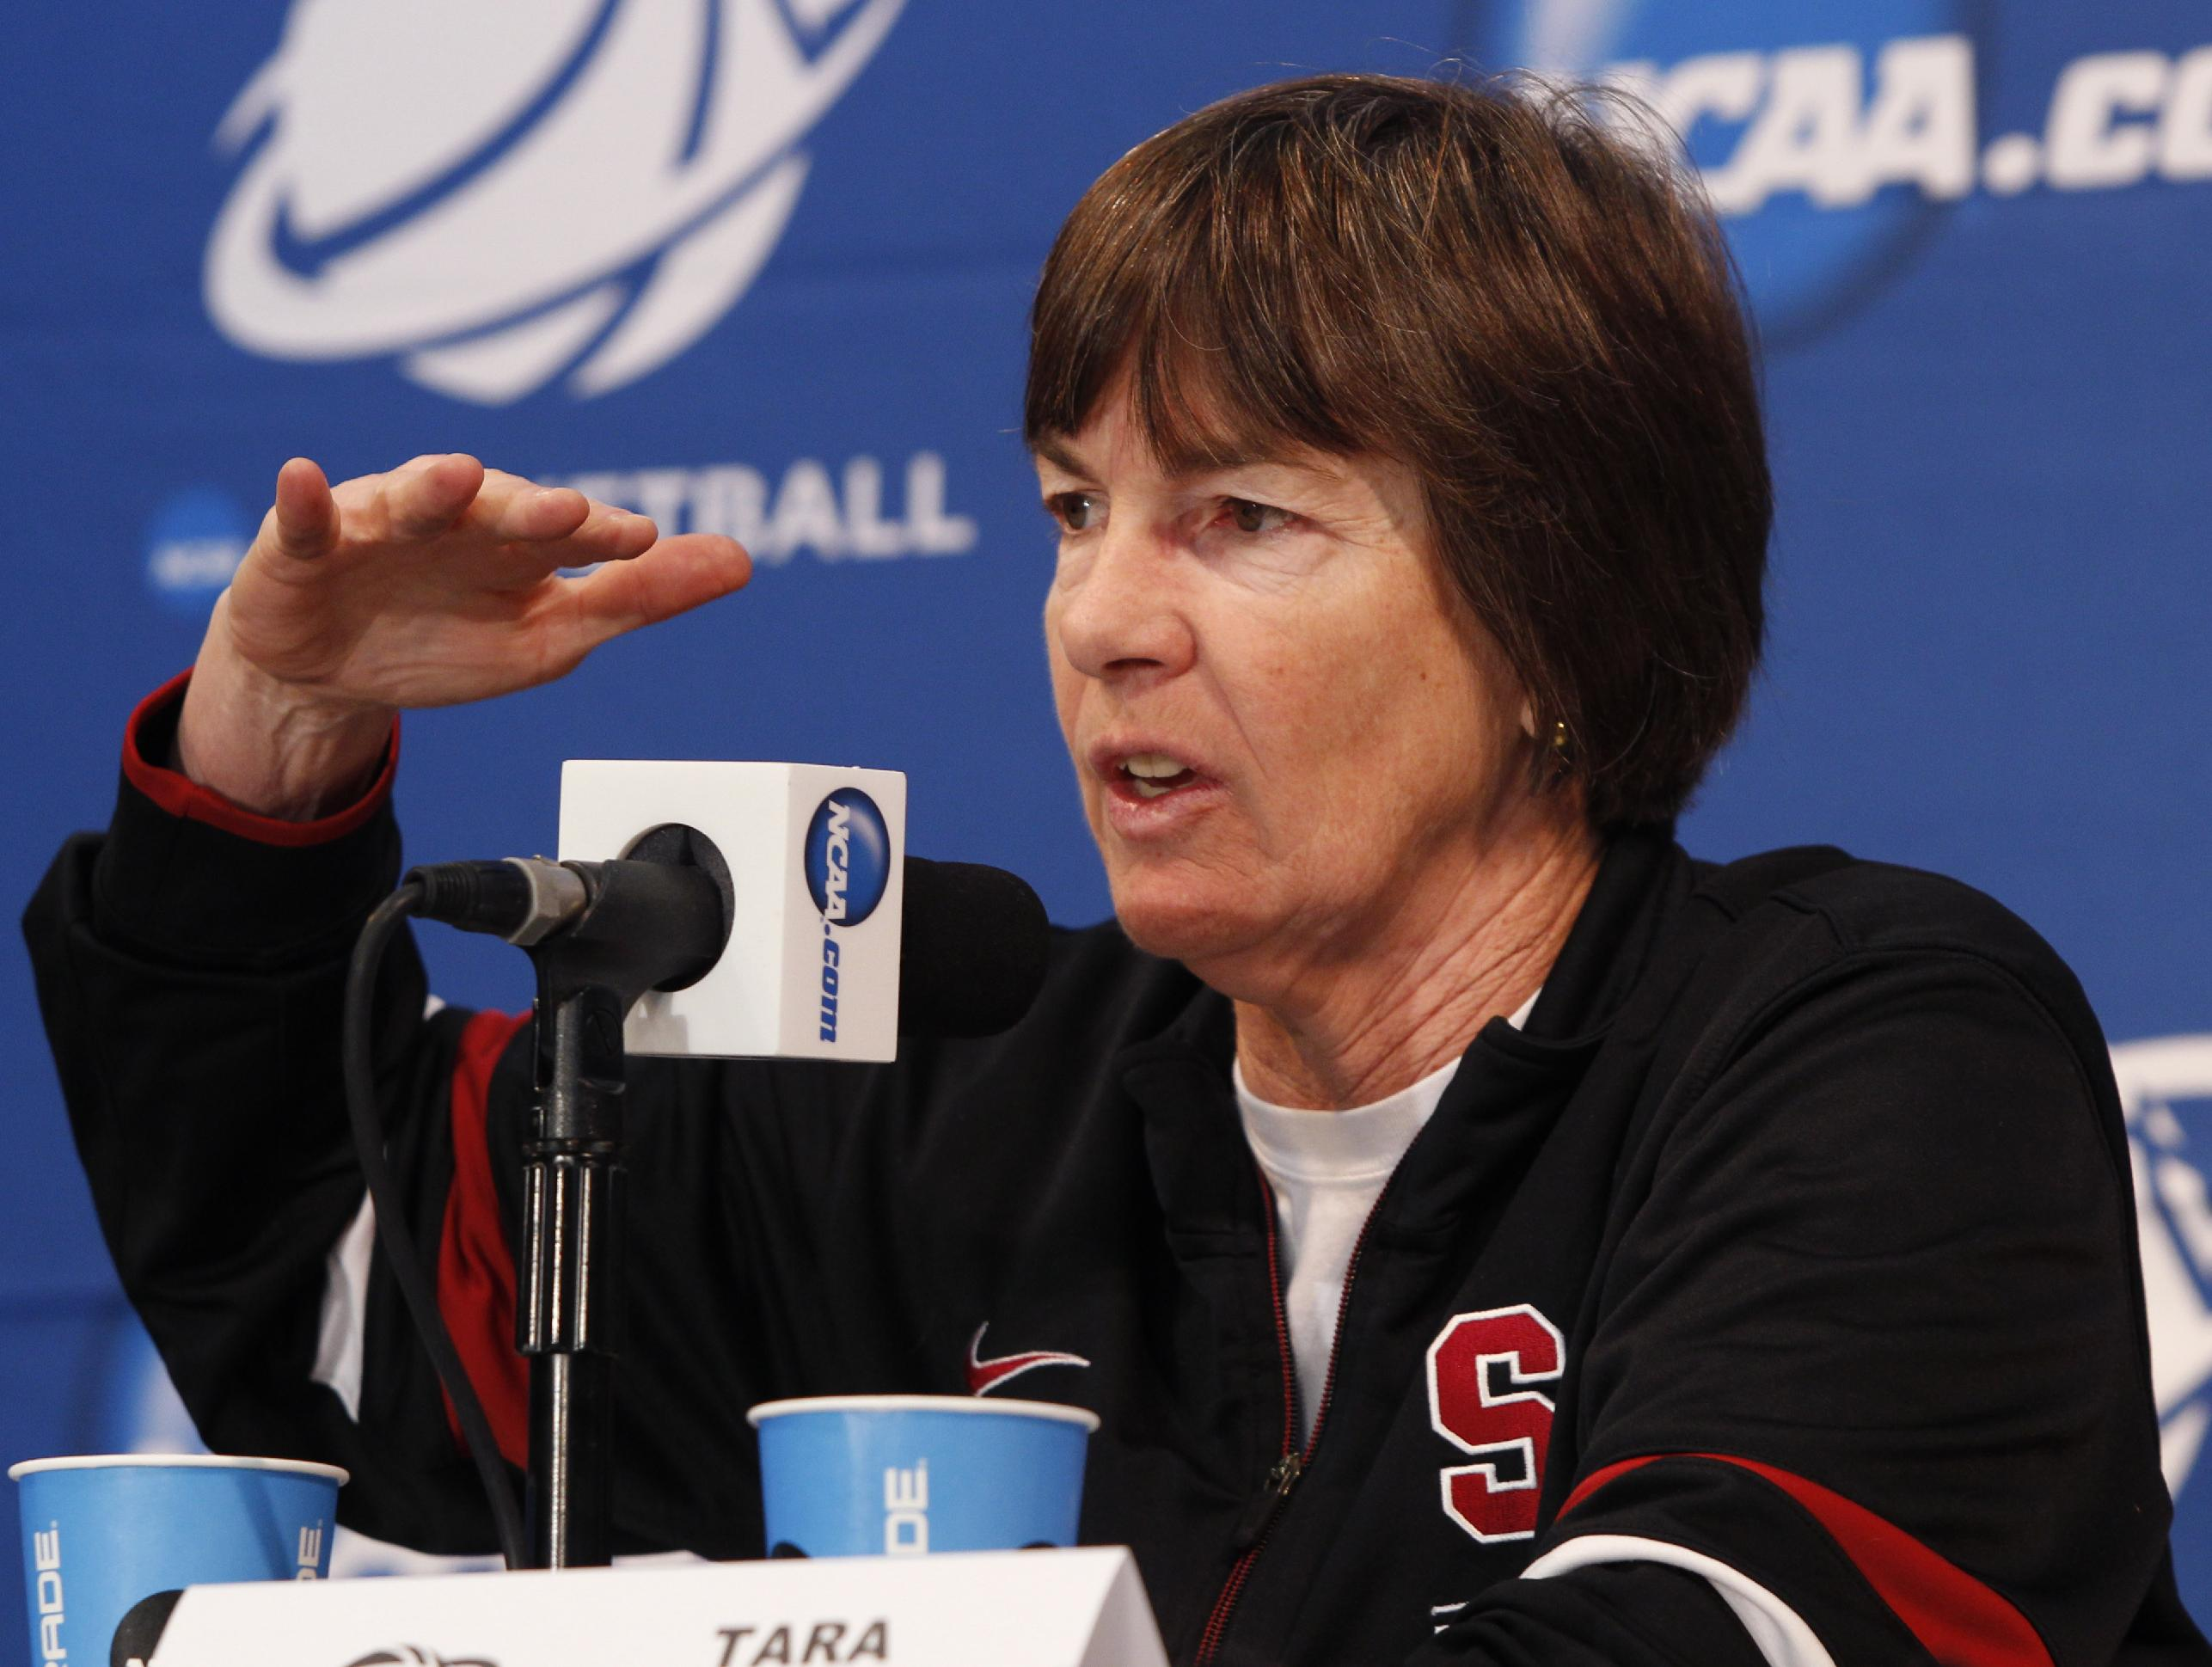 Stanford head coach Tara VanDerveer speaks at a news conference before practice for the second round of the women's NCAA basketball tournament, Monday, March 25, 2013 in Stanford, Calif.  Stanford will play Michigan on Tuesday